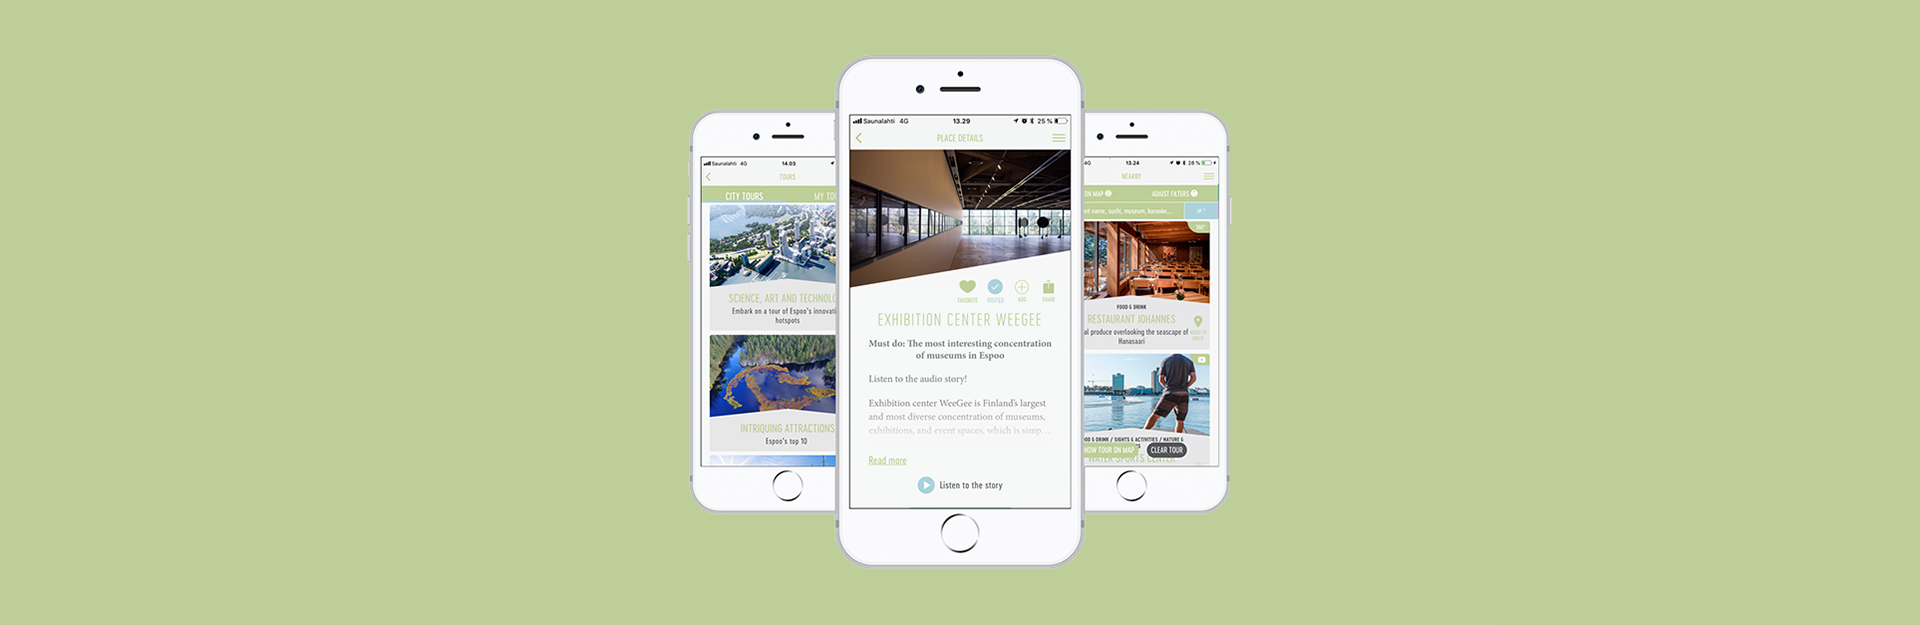 Espoo Innovation Garden's hotspots are now highlighted in a new travel app.